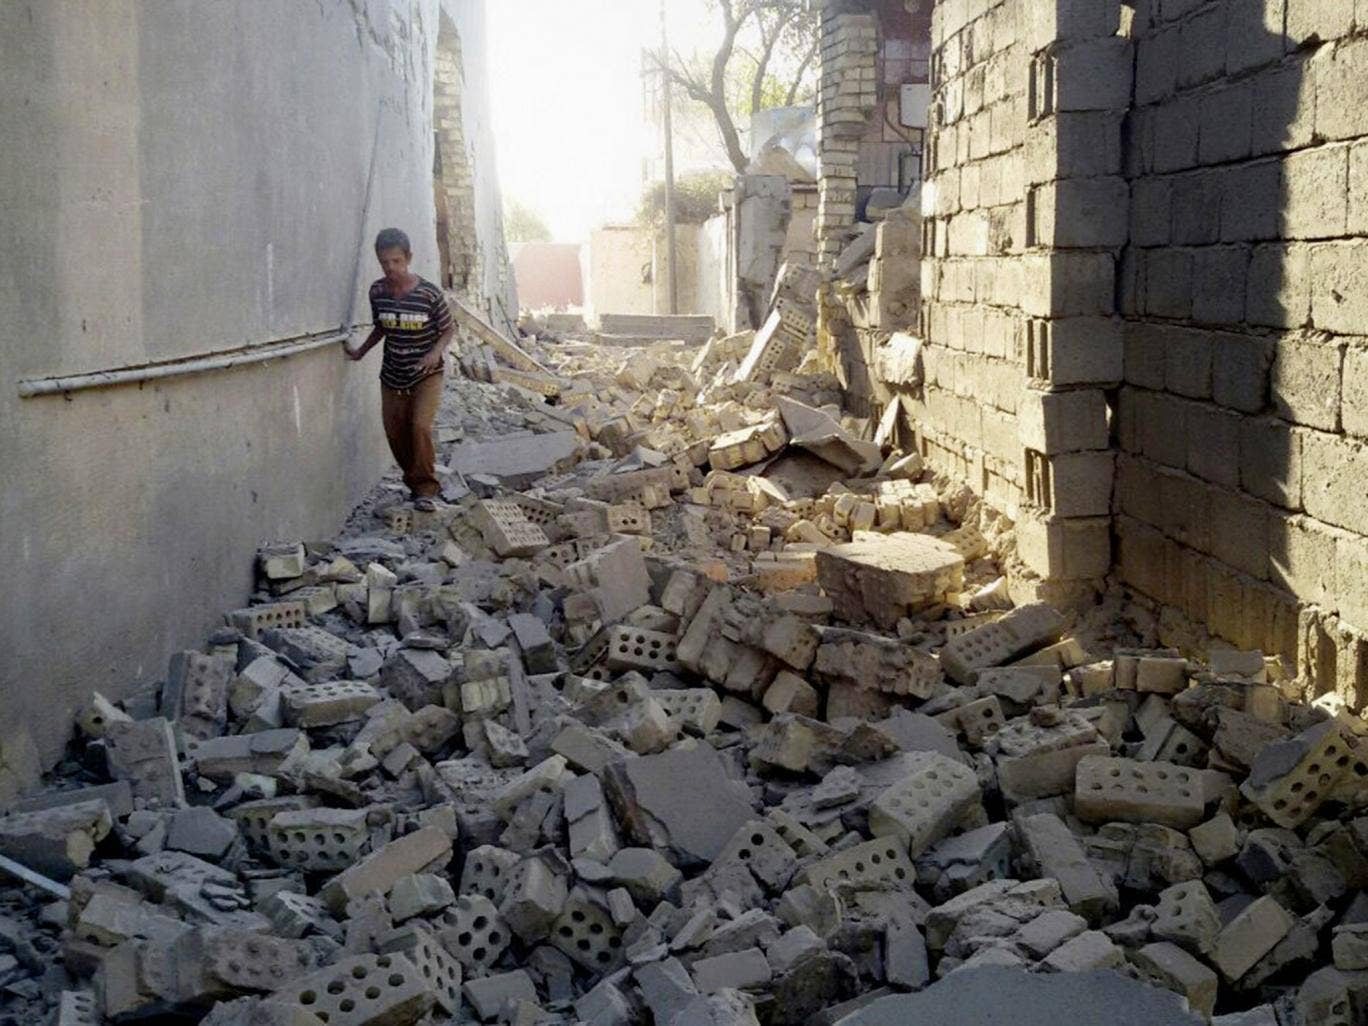 Air strikes on Isis in Iraq and Syria are reducing their cities to ruins